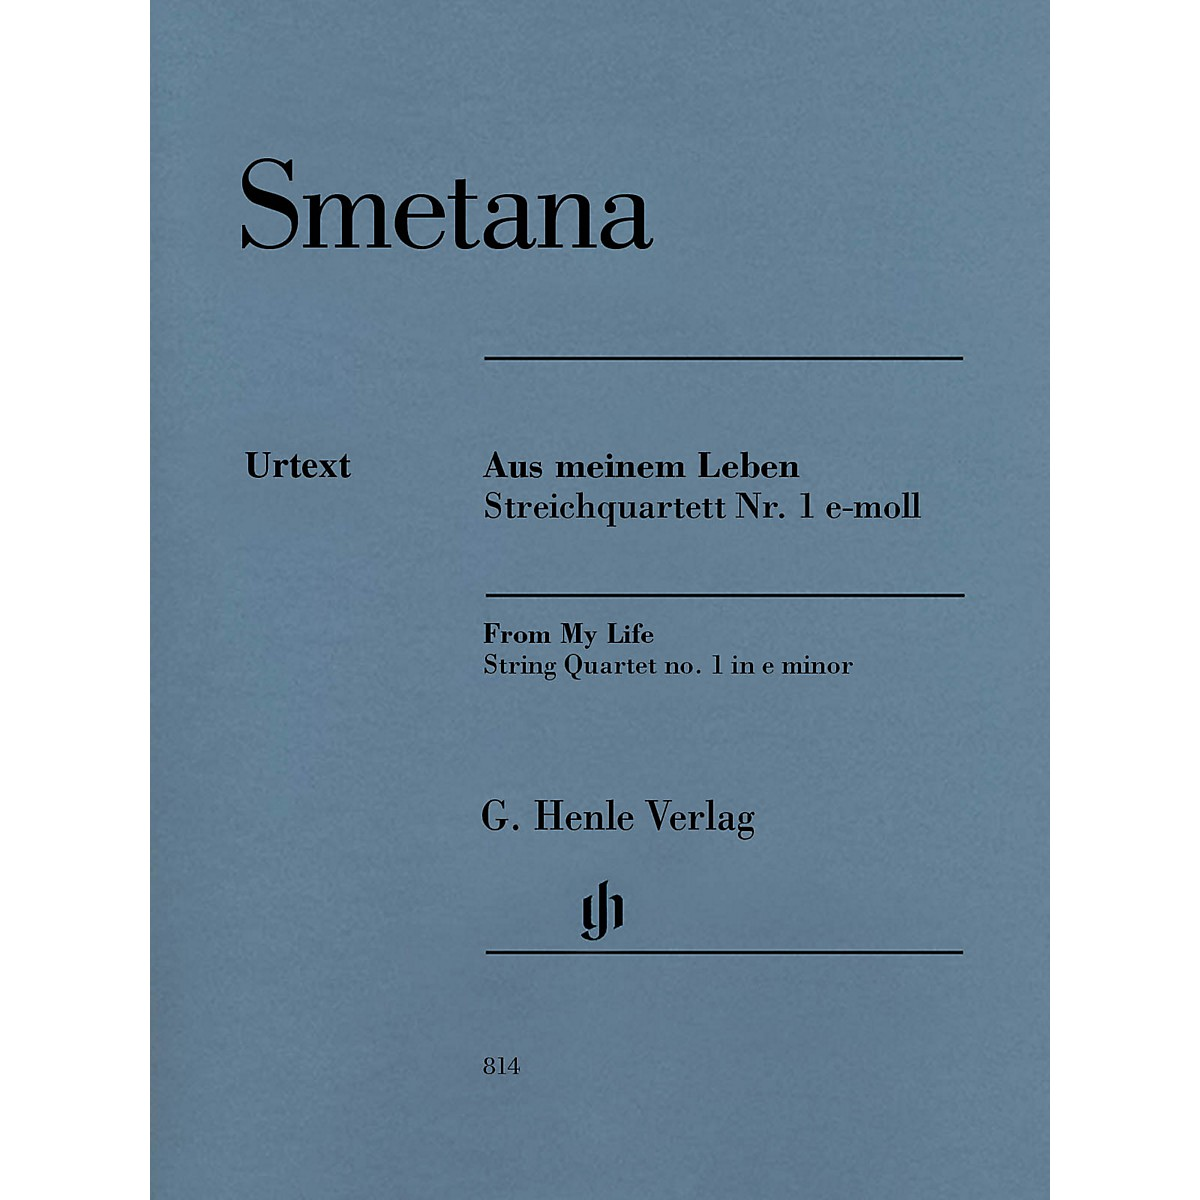 G. Henle Verlag From My Life - String Quartet No. 1 in E Minor Henle Music by Bedrich Smetana Edited by Milan Pospisil